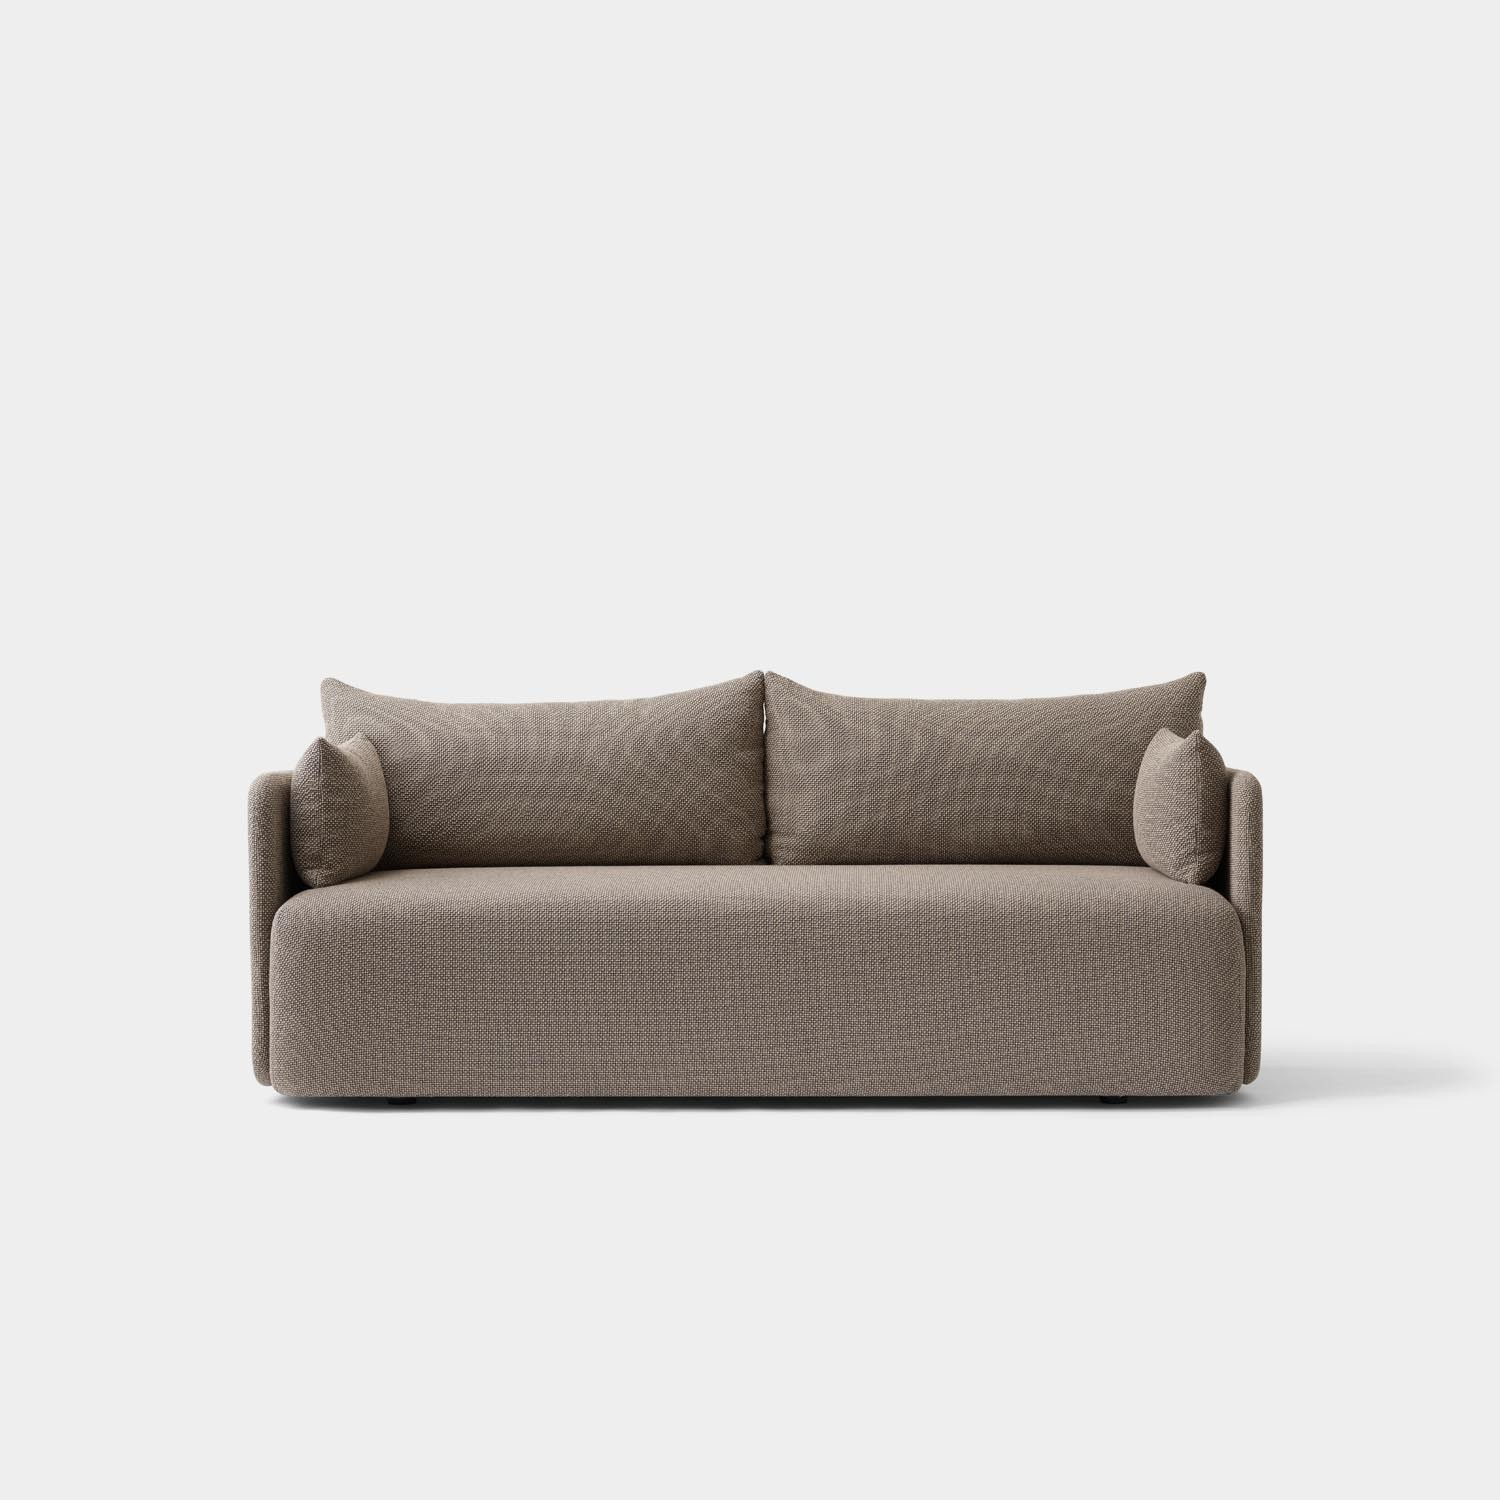 Offset Sofa 2 Seater